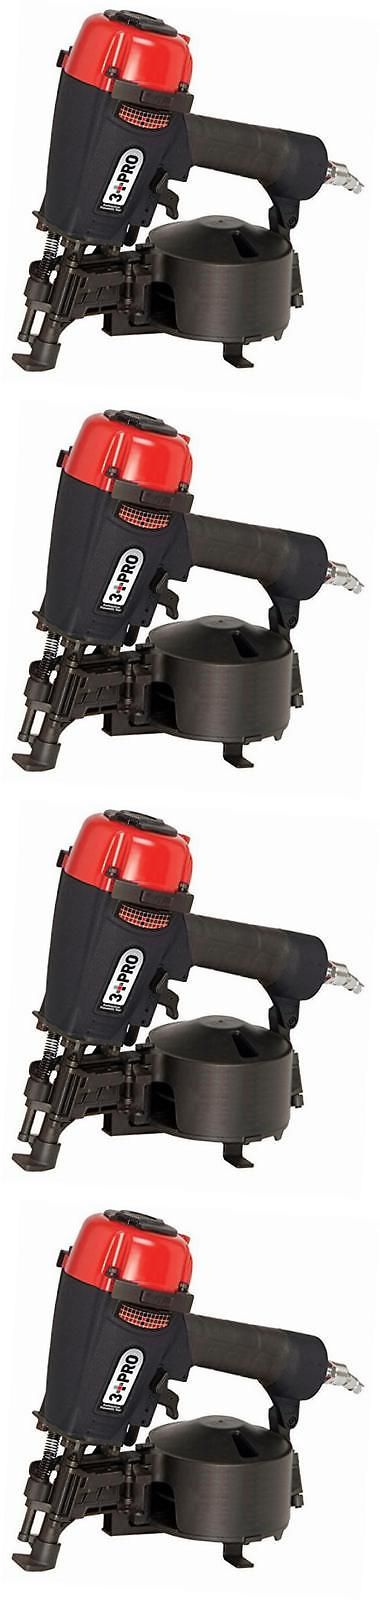 Roofing Guns 42243: Crn45p 11-Gauge Roofing Nailer, 7 8-1 3 4-Inch, Black Red -> BUY IT NOW ONLY: $173.26 on eBay!